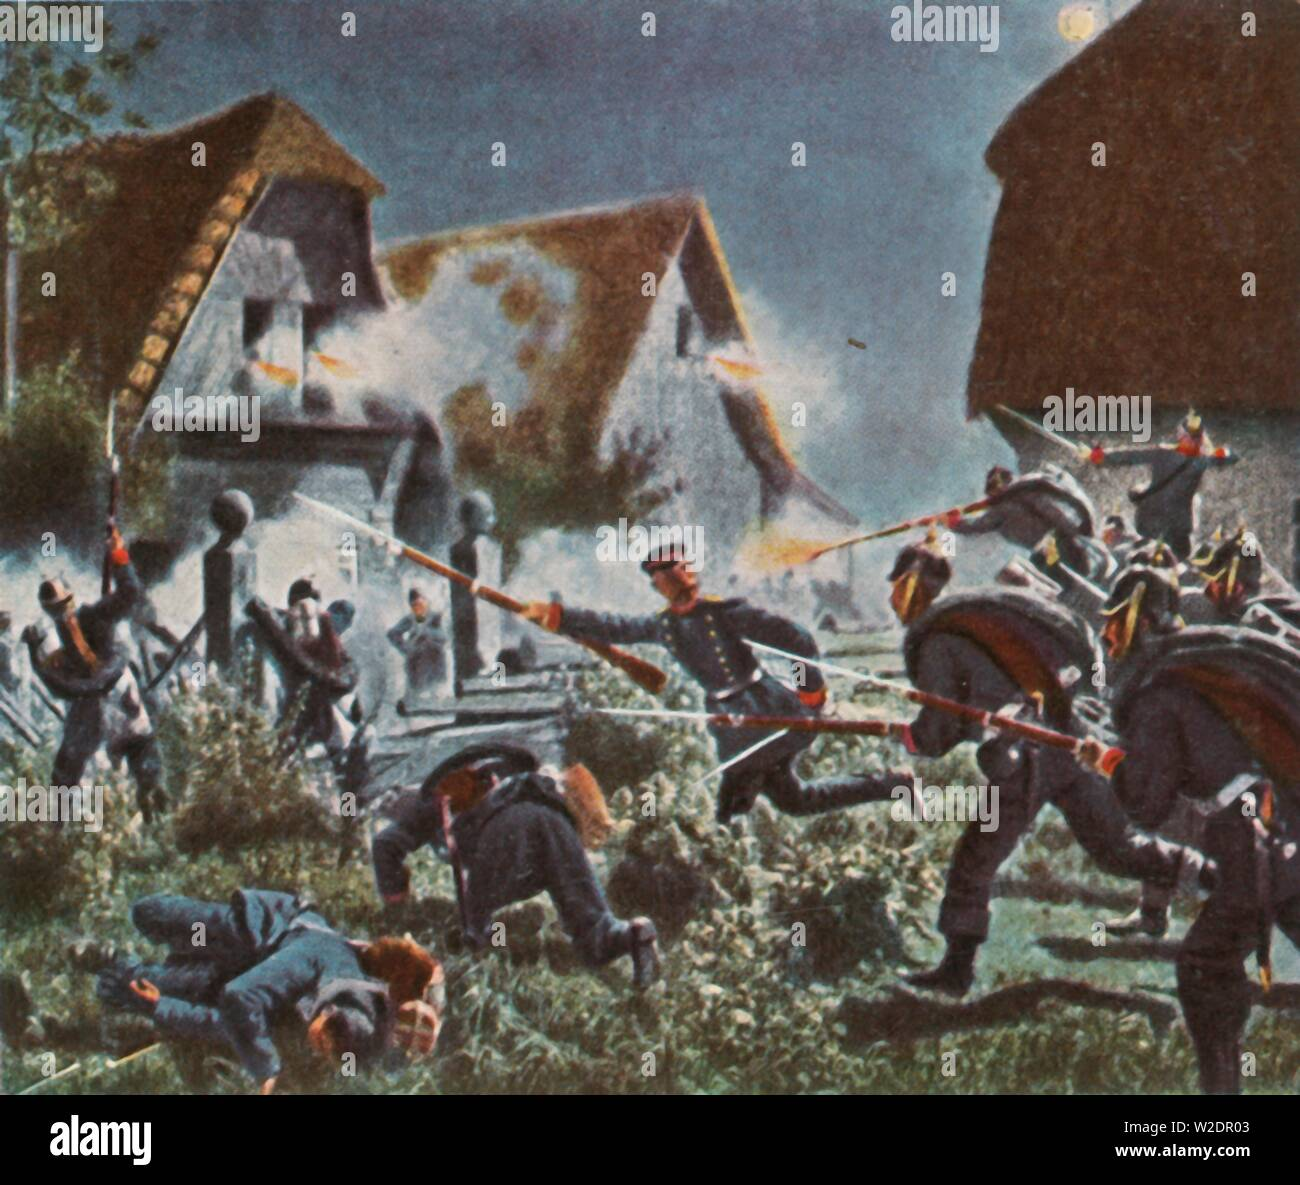 "Night attack at Podol, 26 June 1866, (1936). 'Nachtgefecht Bei Podol, 26 Juni 1866'. The Battle of Podol, during the Austro-Prussian War, took place in Bohemia (at modern day Svijany). From ""Bilder Deutscher Geschichte"", (Pictures of German History), No.12, cigarette card album. [Cigaretten-Bilderdienst, Altona-Bahrenfeld, Hamburg, Germany, 1936] - Stock Image"